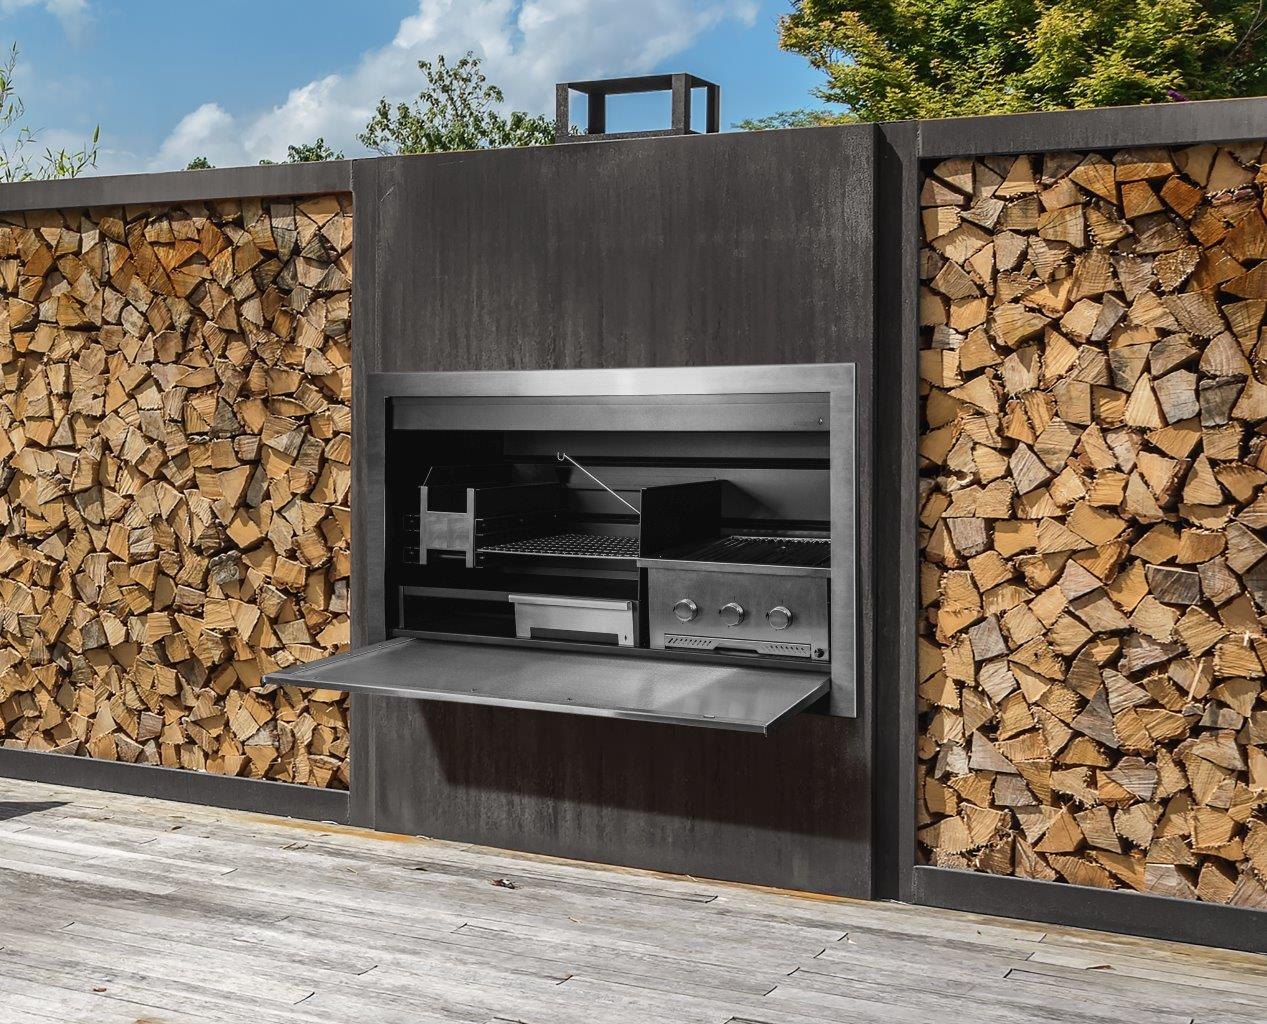 Combination Wood And Gas Fireplace Insert Stainless Steel Gas And Wood Combination Braai By Beauty